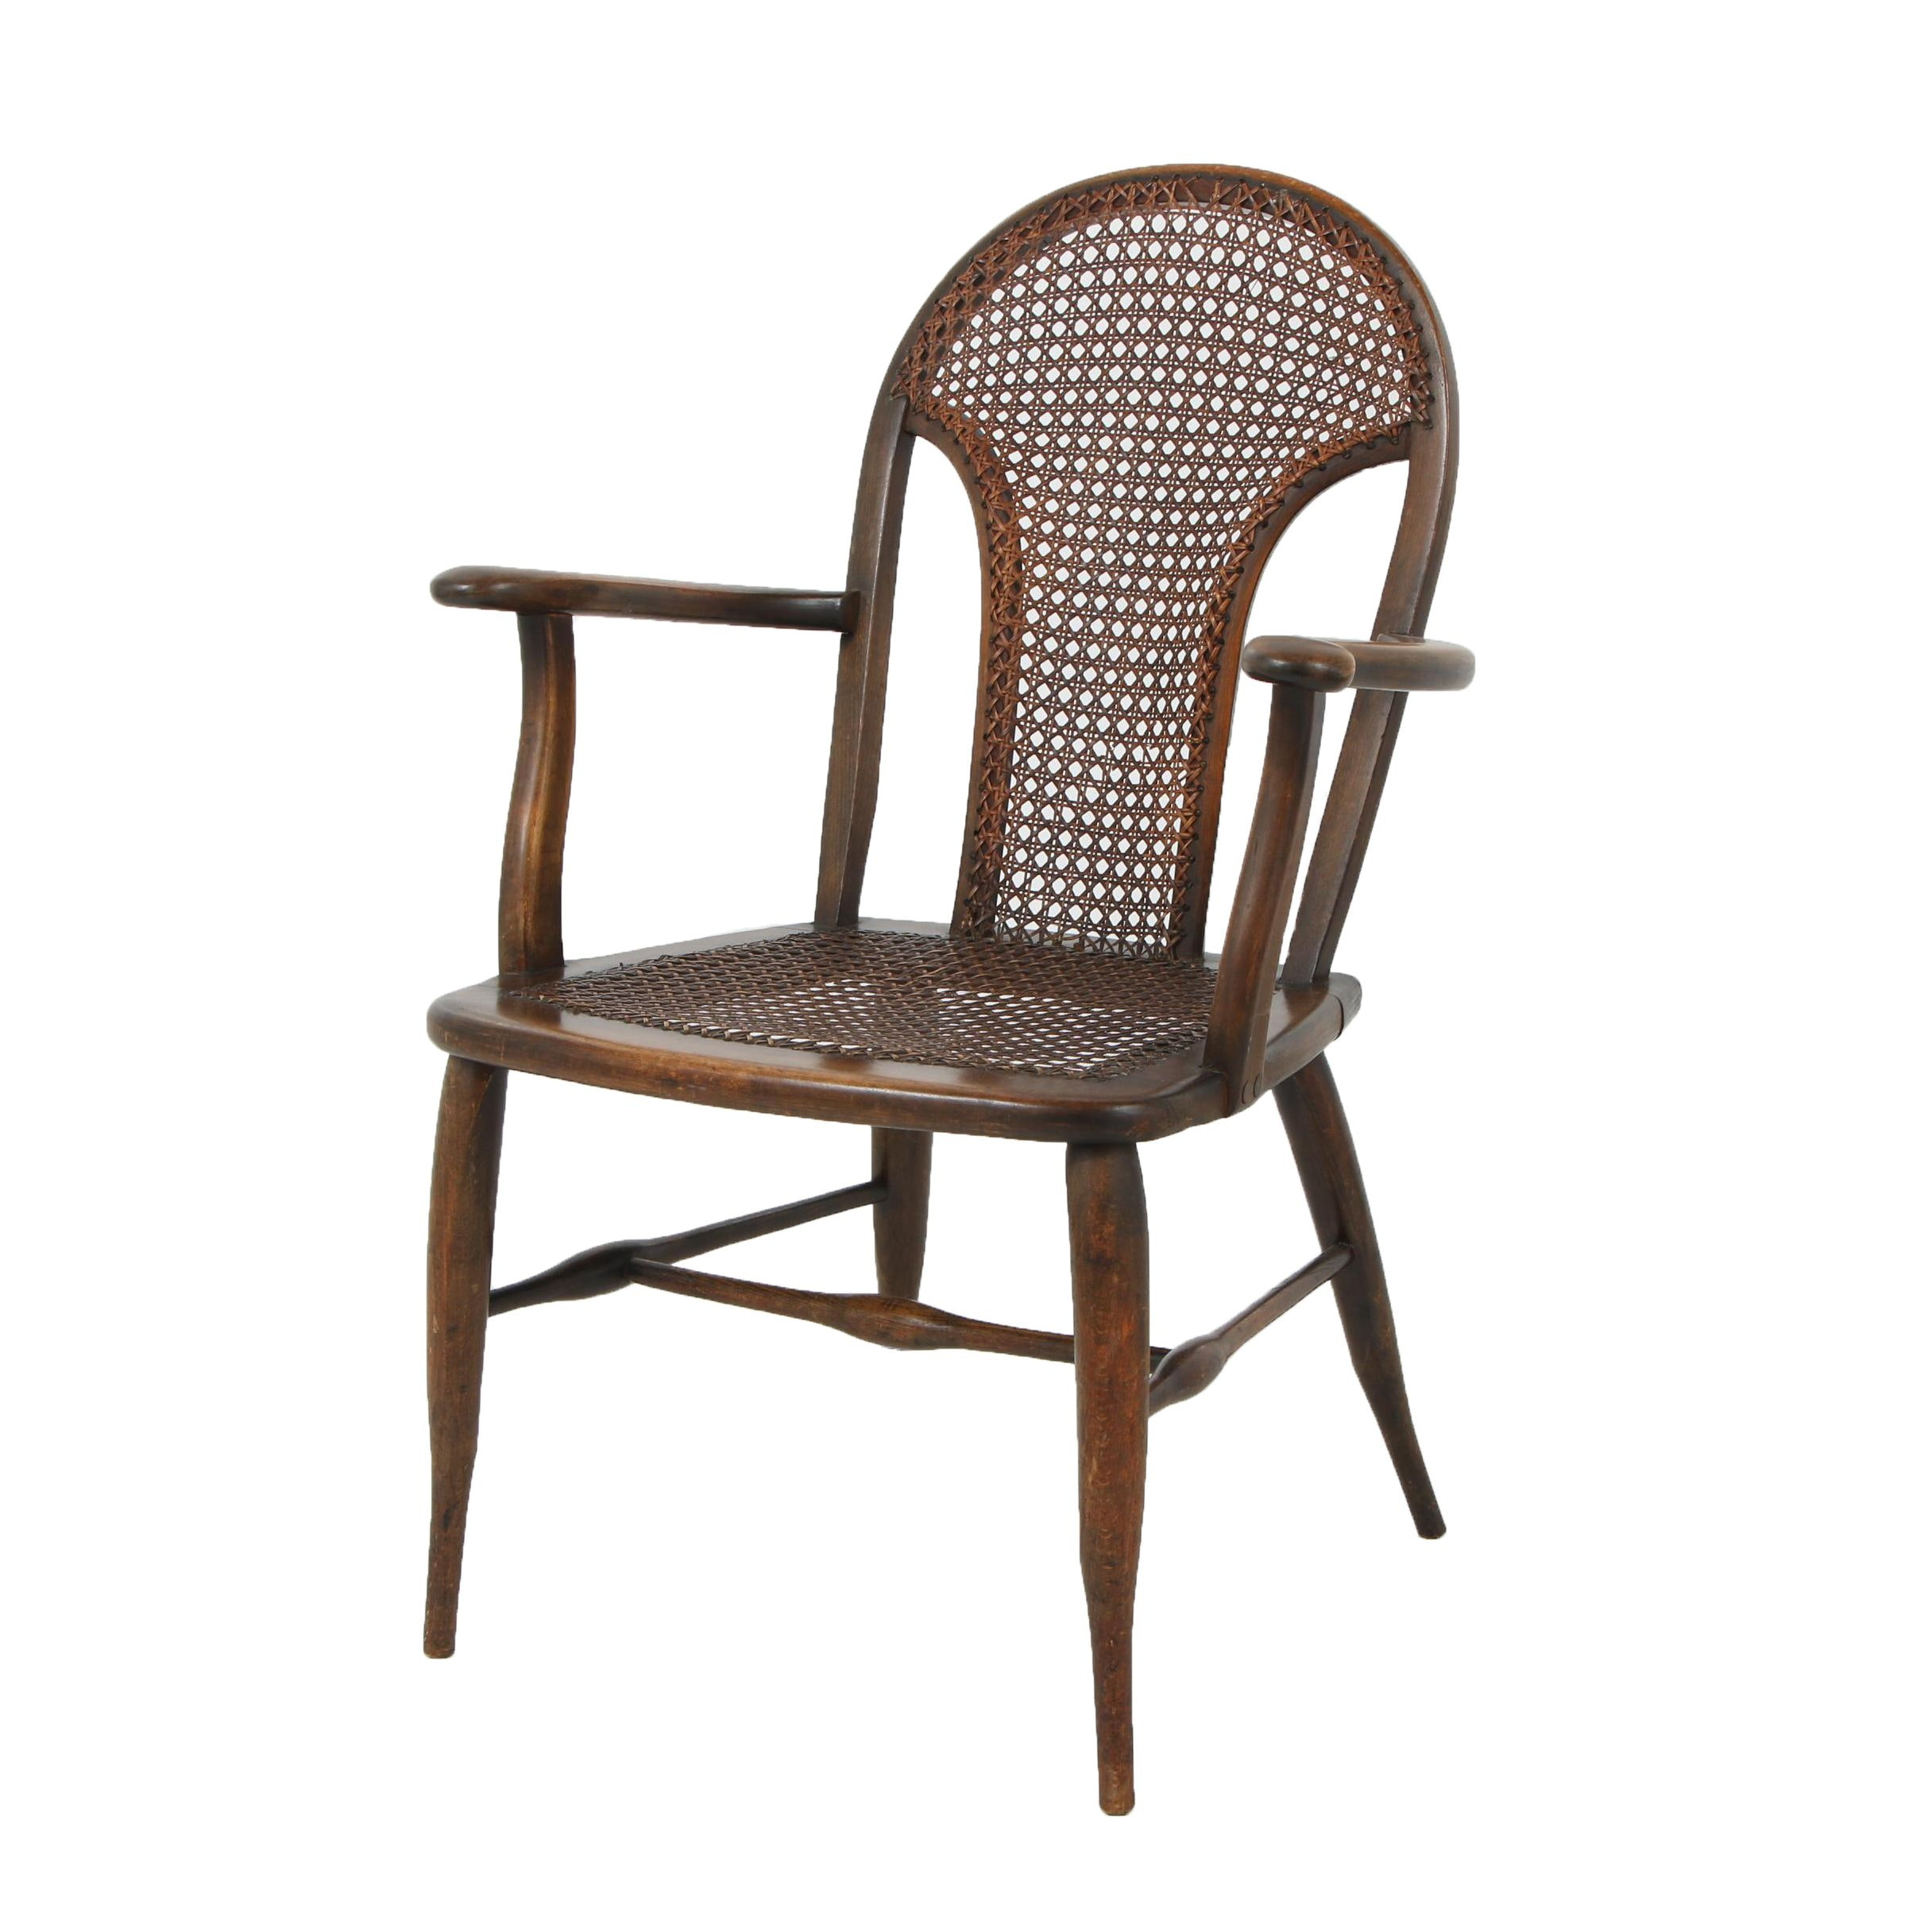 Queen Anne-Style Wooden Armchair with Caning